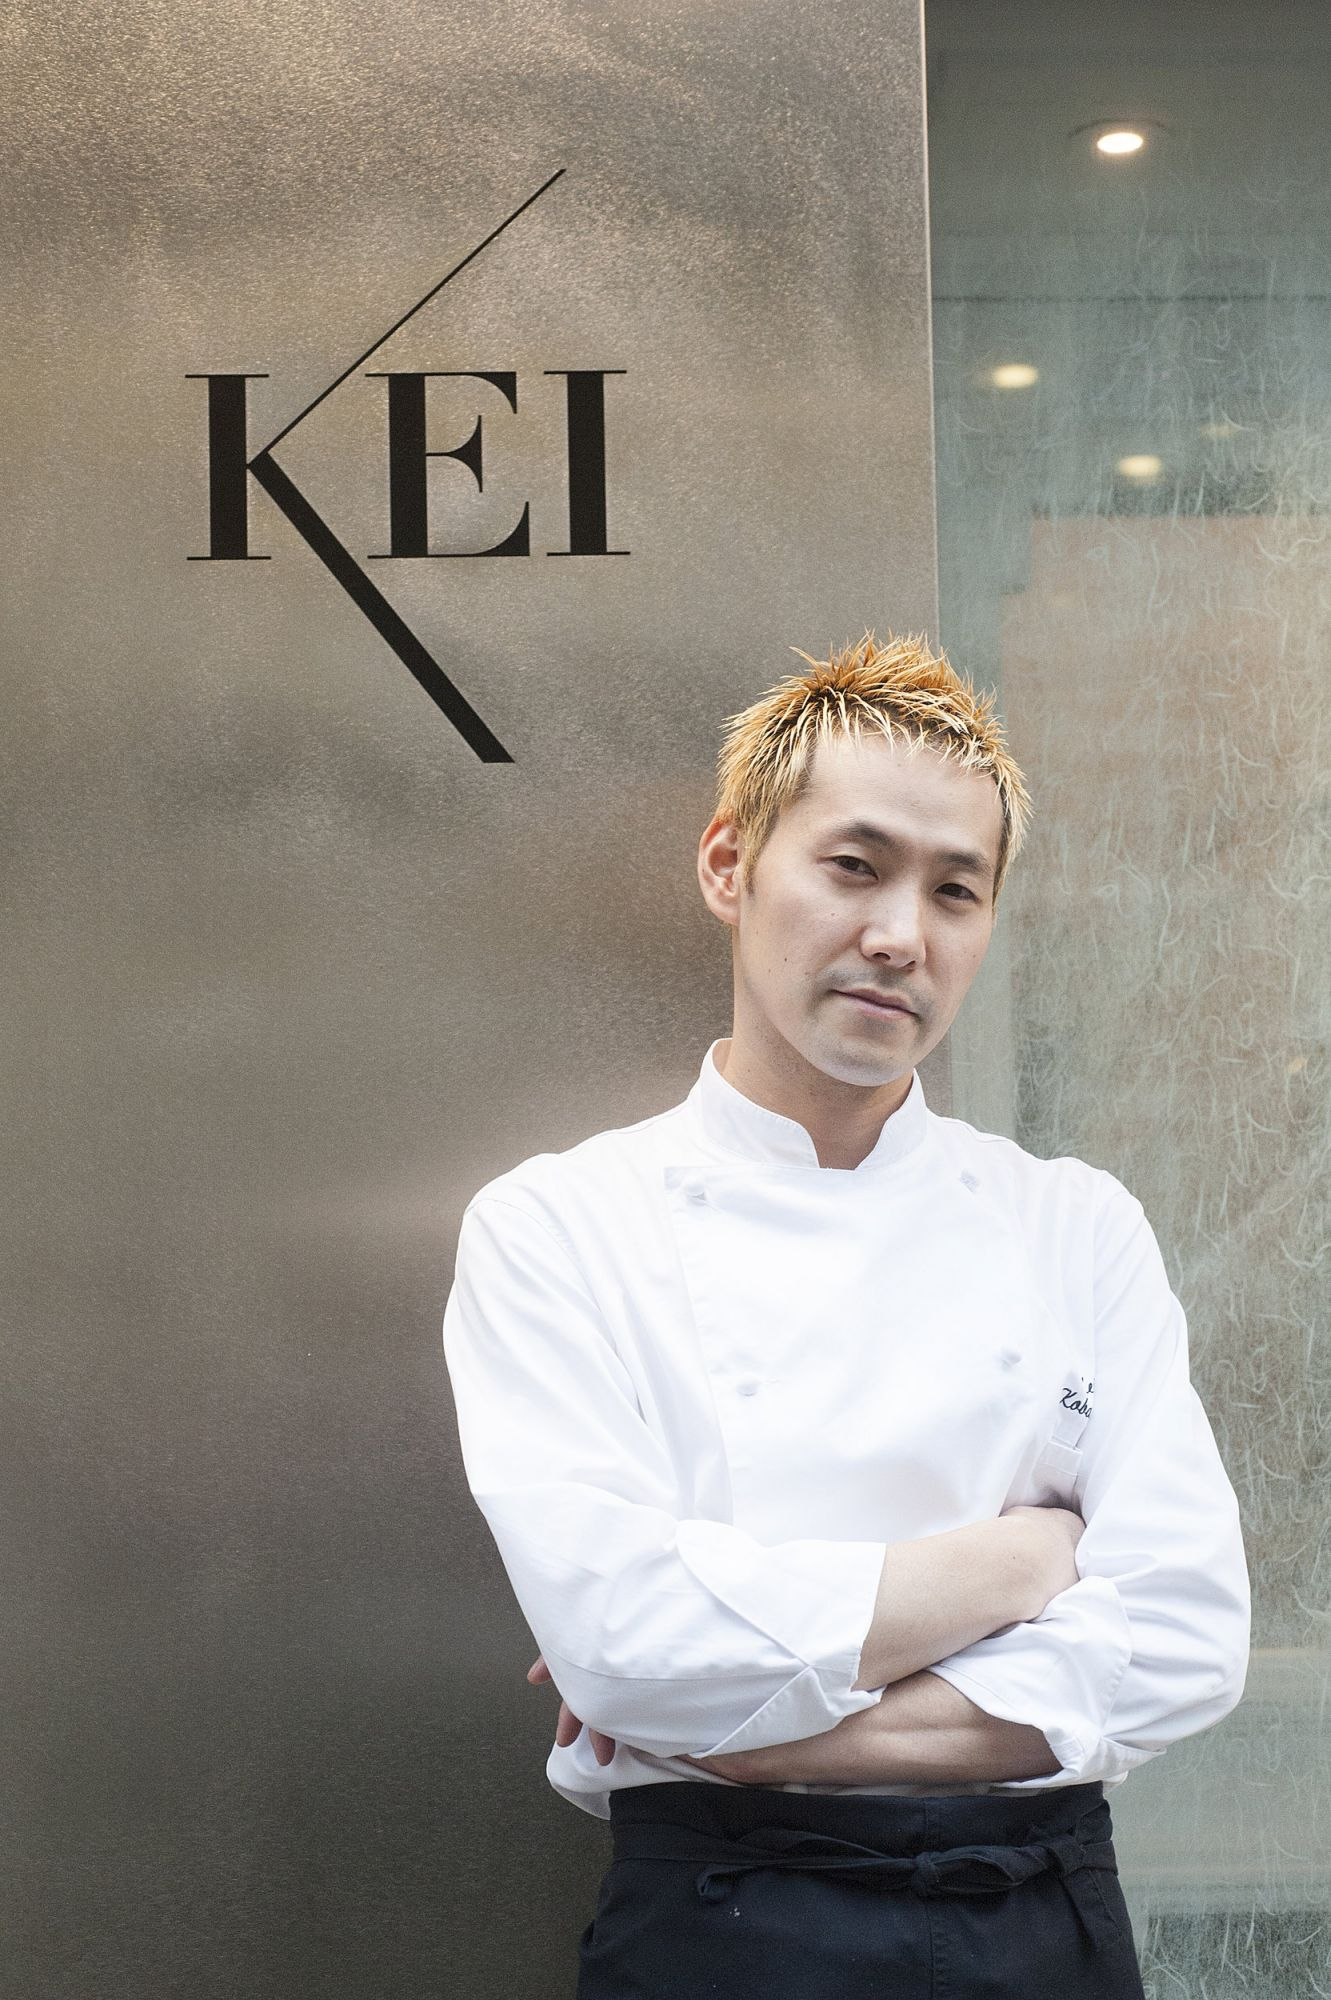 Kei And Shuko, Two Of The Hottest Restaurants In Paris And New York, Are Confirmed For Taste Of Hong Kong